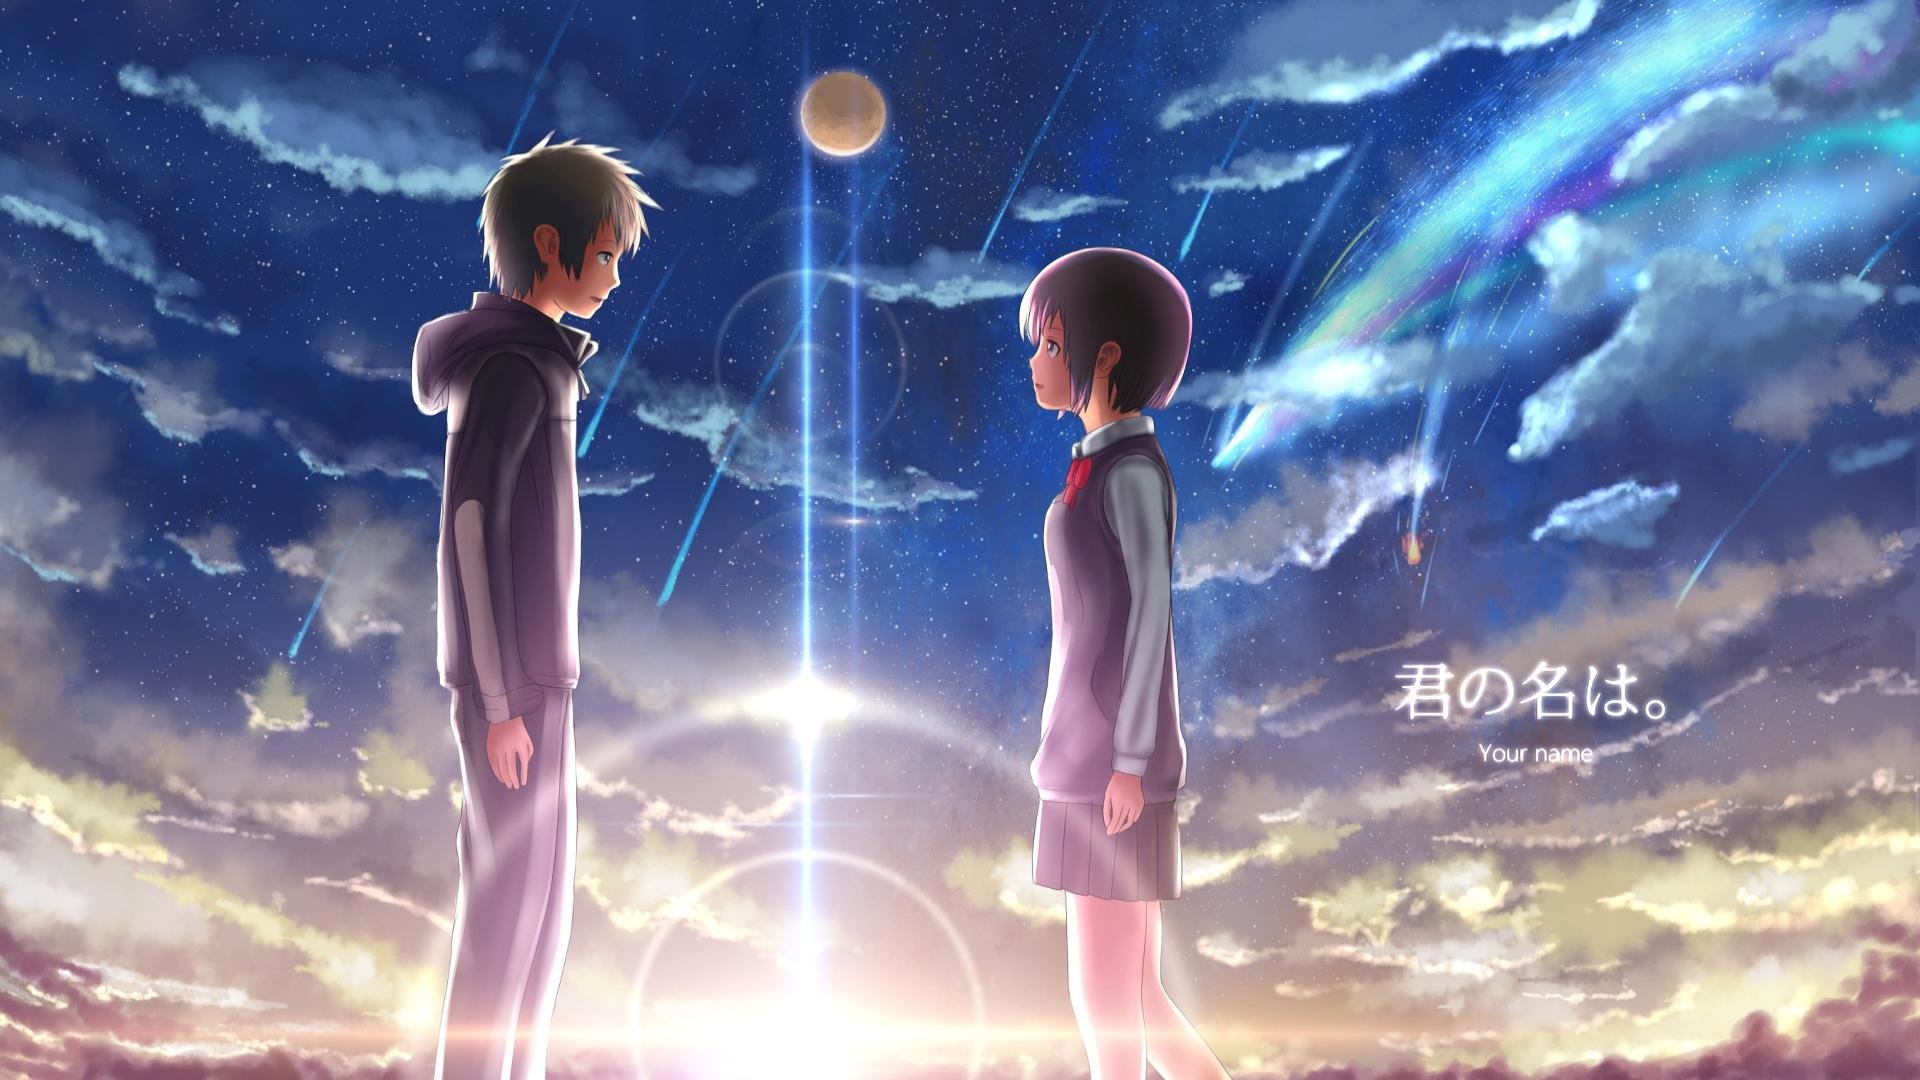 Your Name Wallpapers 1920x1080 Full Hd 1080p Desktop Backgrounds